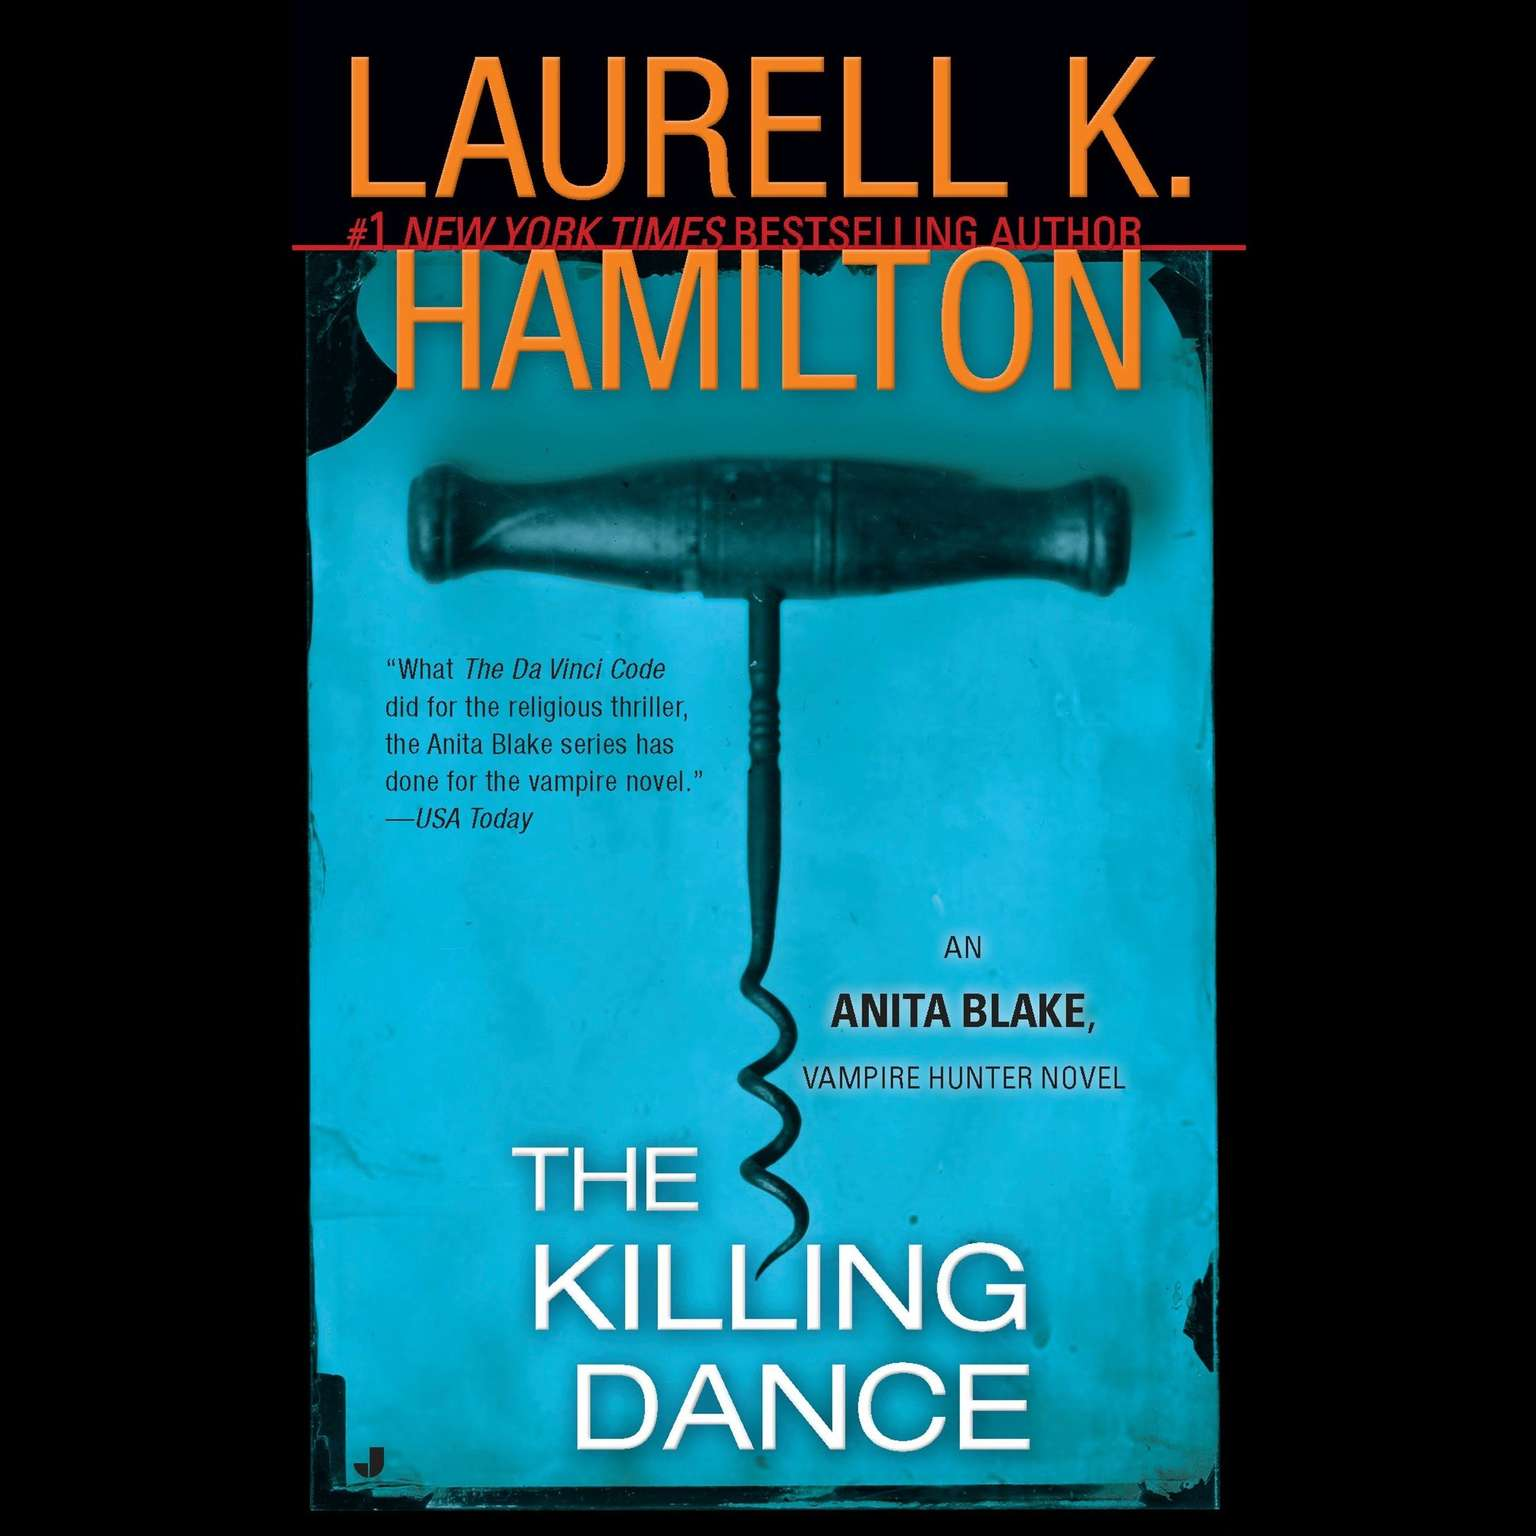 laurell k hamilton anita blake series new book